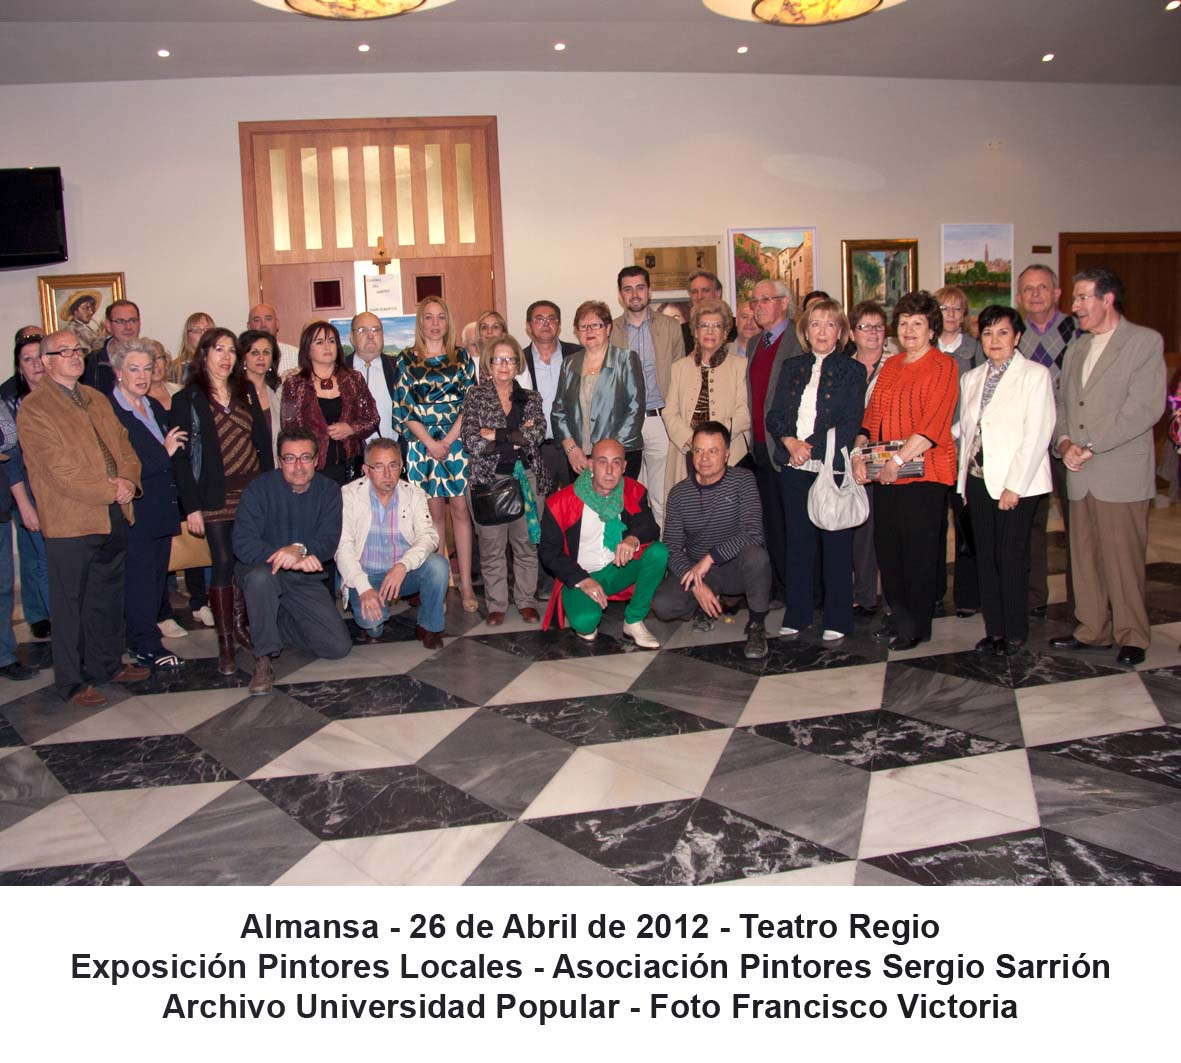 120426 ASOC PINTORES SERGIO SARRION 07